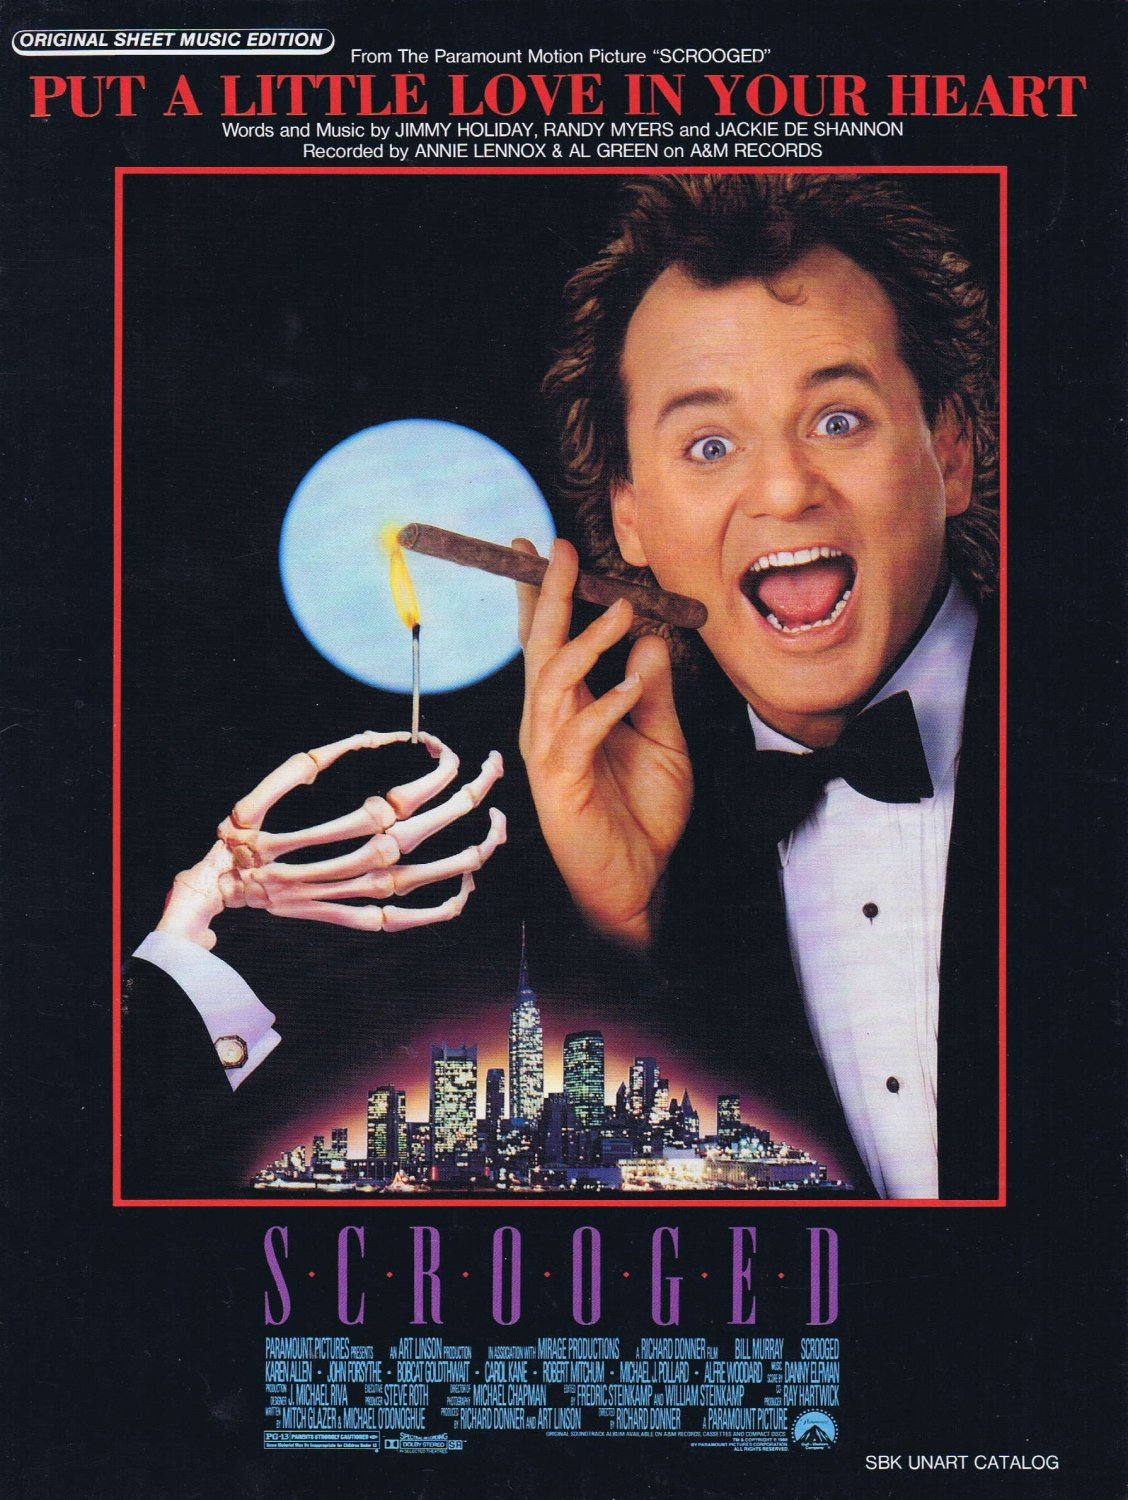 Put a Little Love in Your Heart Sheet Music from Scrooged with Bill Murray